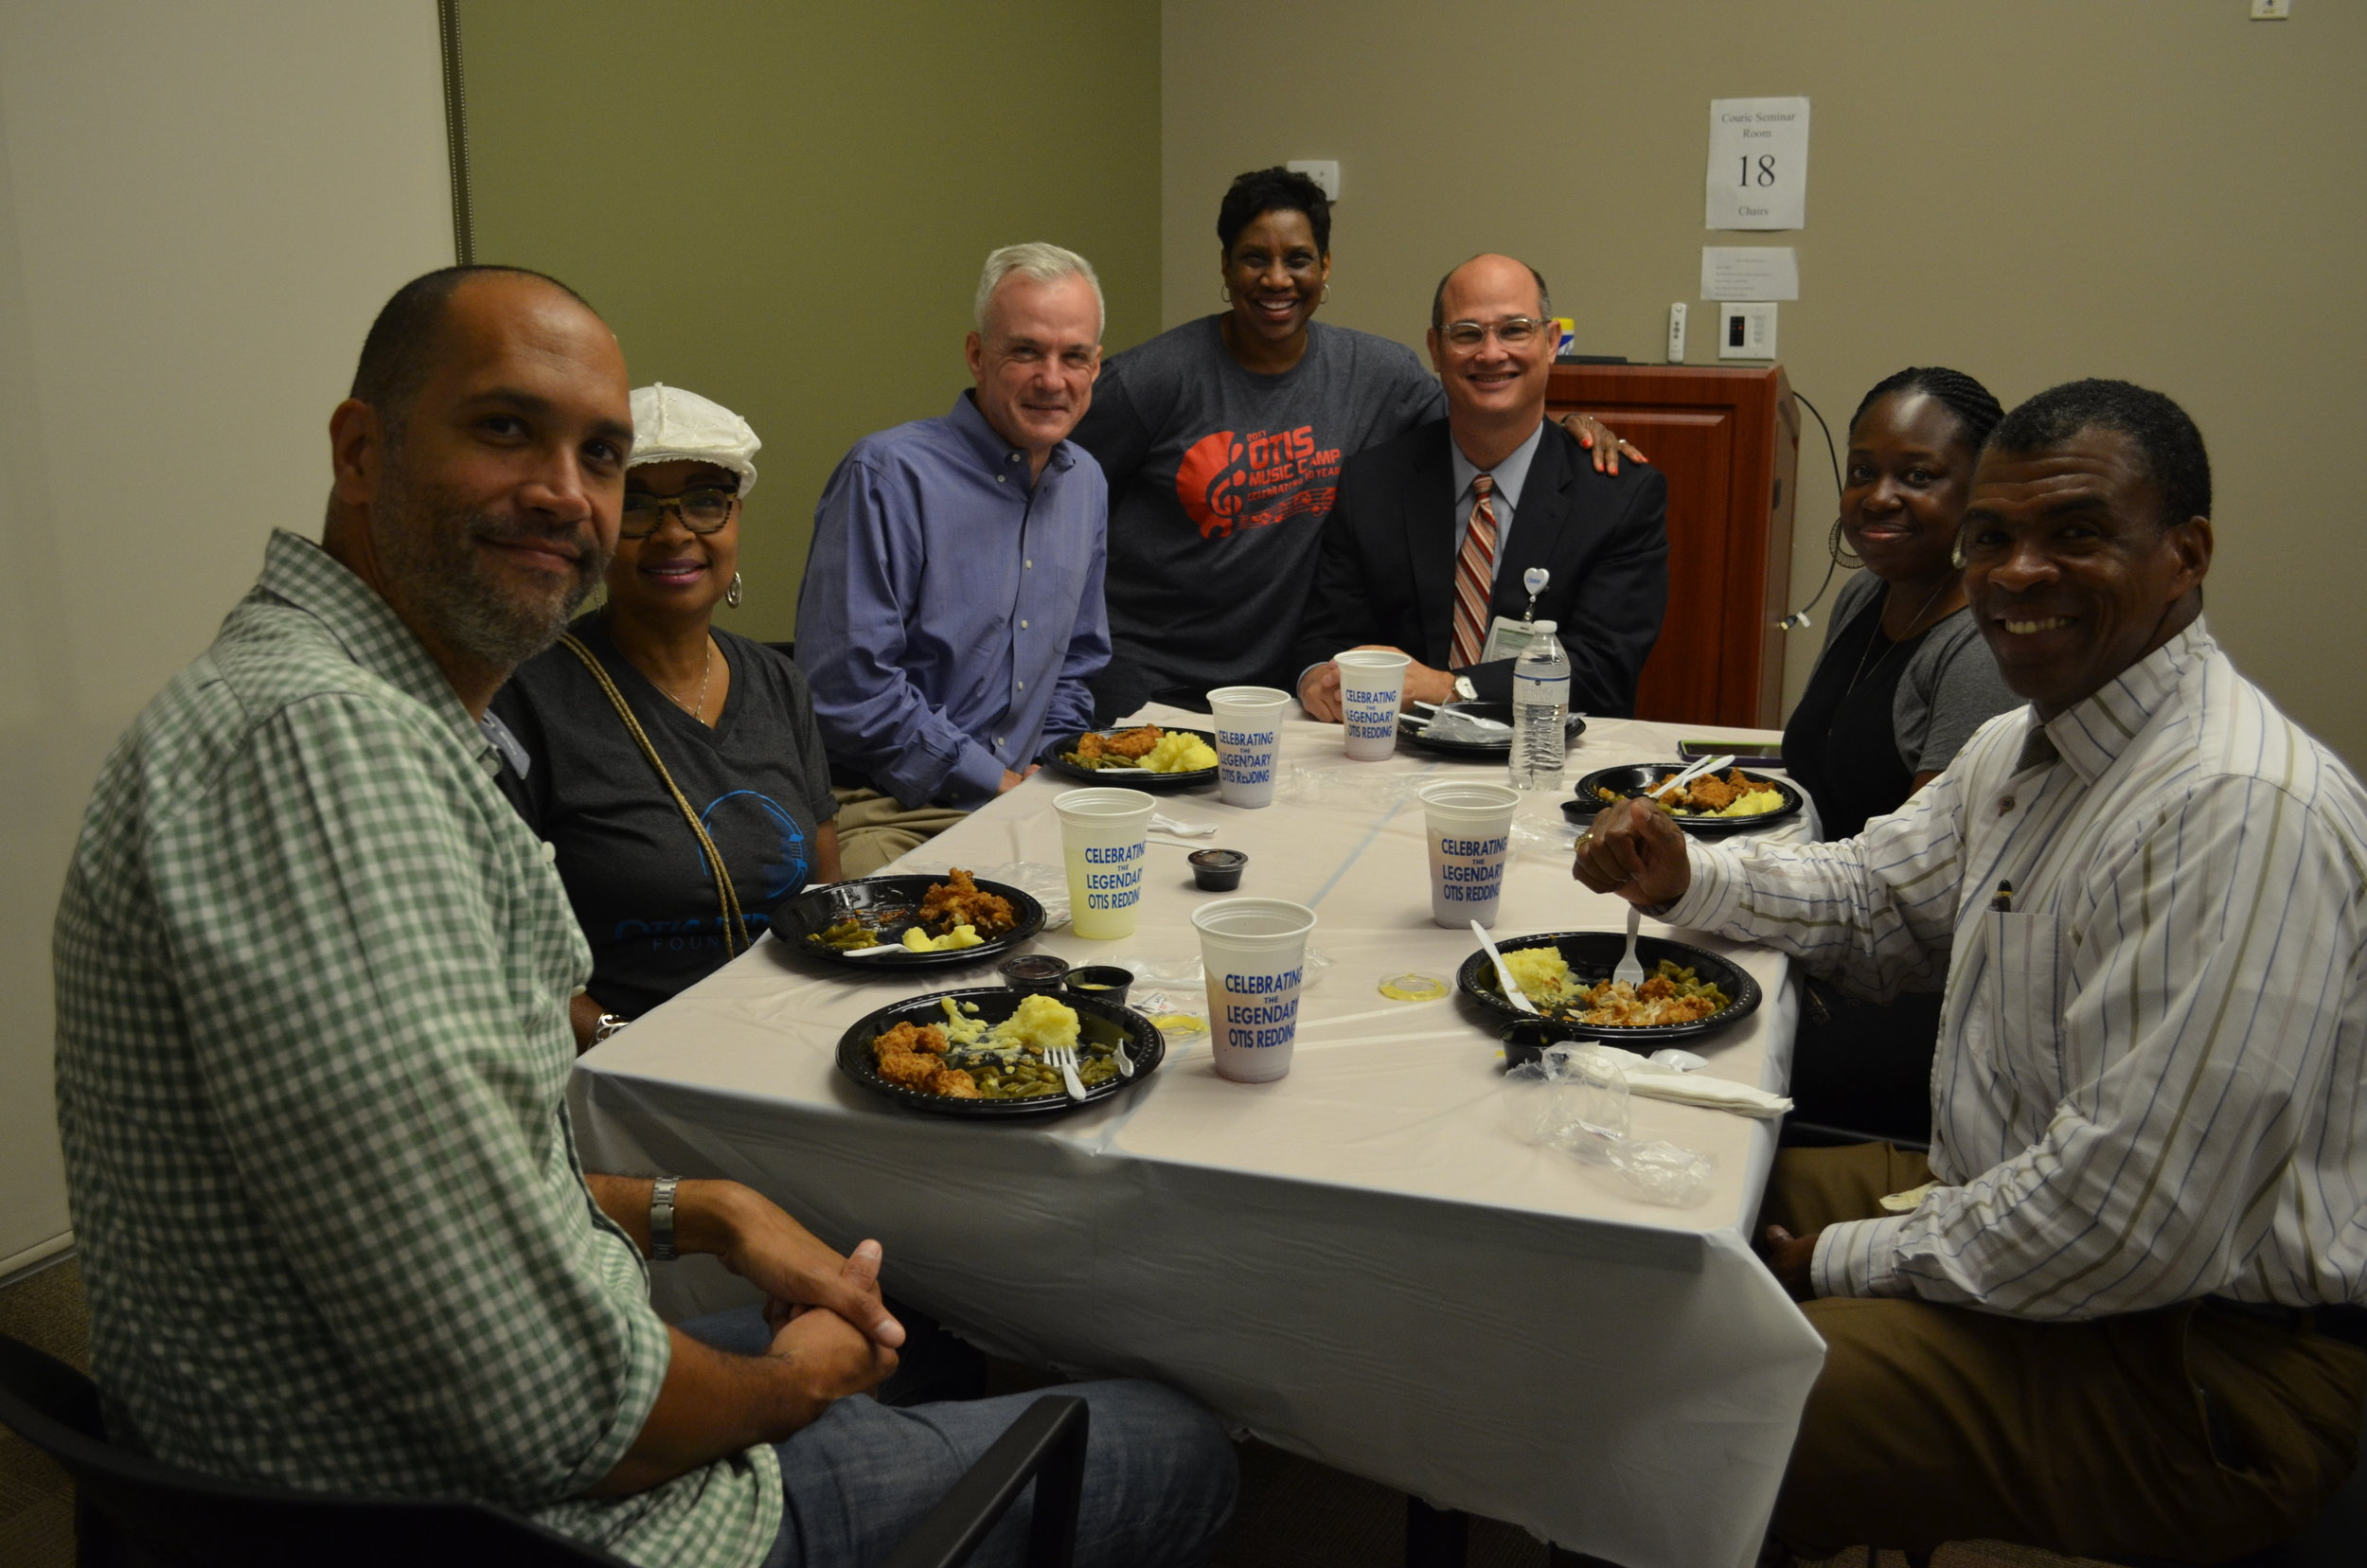 Some of our sponsors and board members stopped by and ate lunch with the campers.